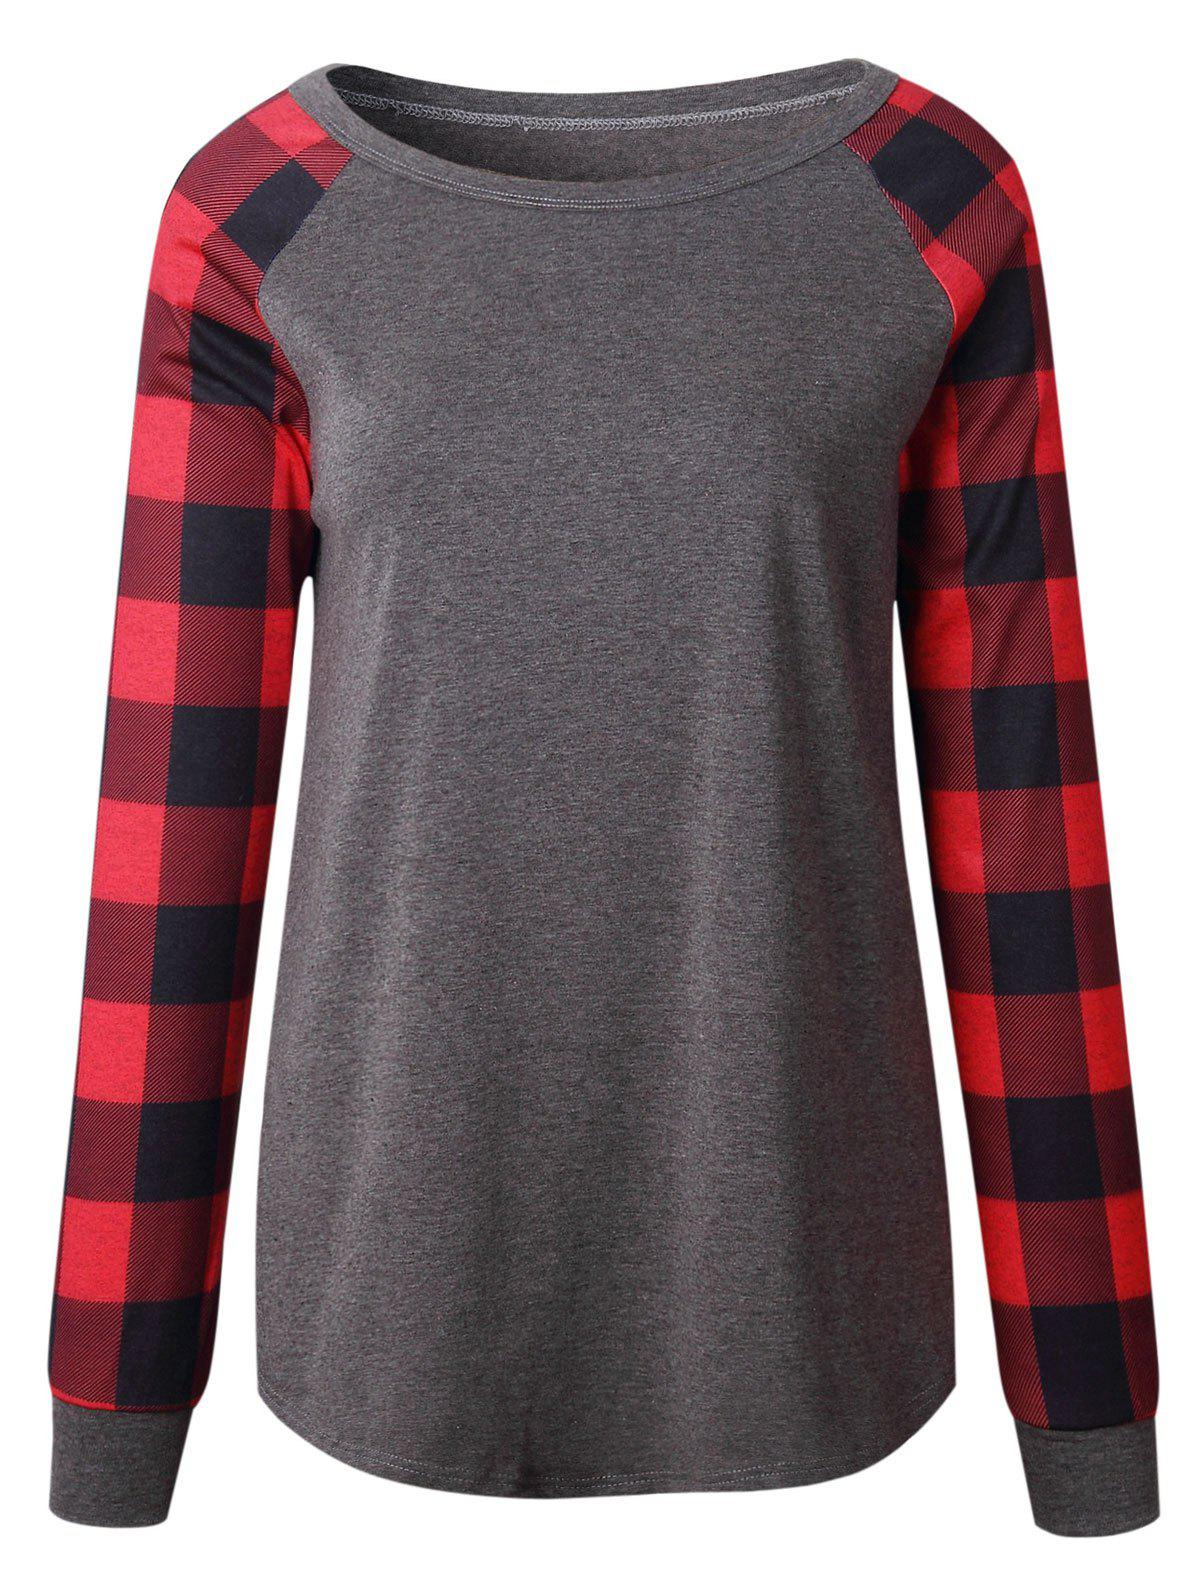 Plaid Insert Raglan Sleeve TopWOMEN<br><br>Size: L; Color: DEEP GRAY; Material: Polyester,Spandex; Shirt Length: Regular; Sleeve Length: Full; Collar: Round Neck; Style: Casual; Pattern Type: Plaid; Season: Fall,Spring; Weight: 0.3200kg; Package Contents: 1 x Top;